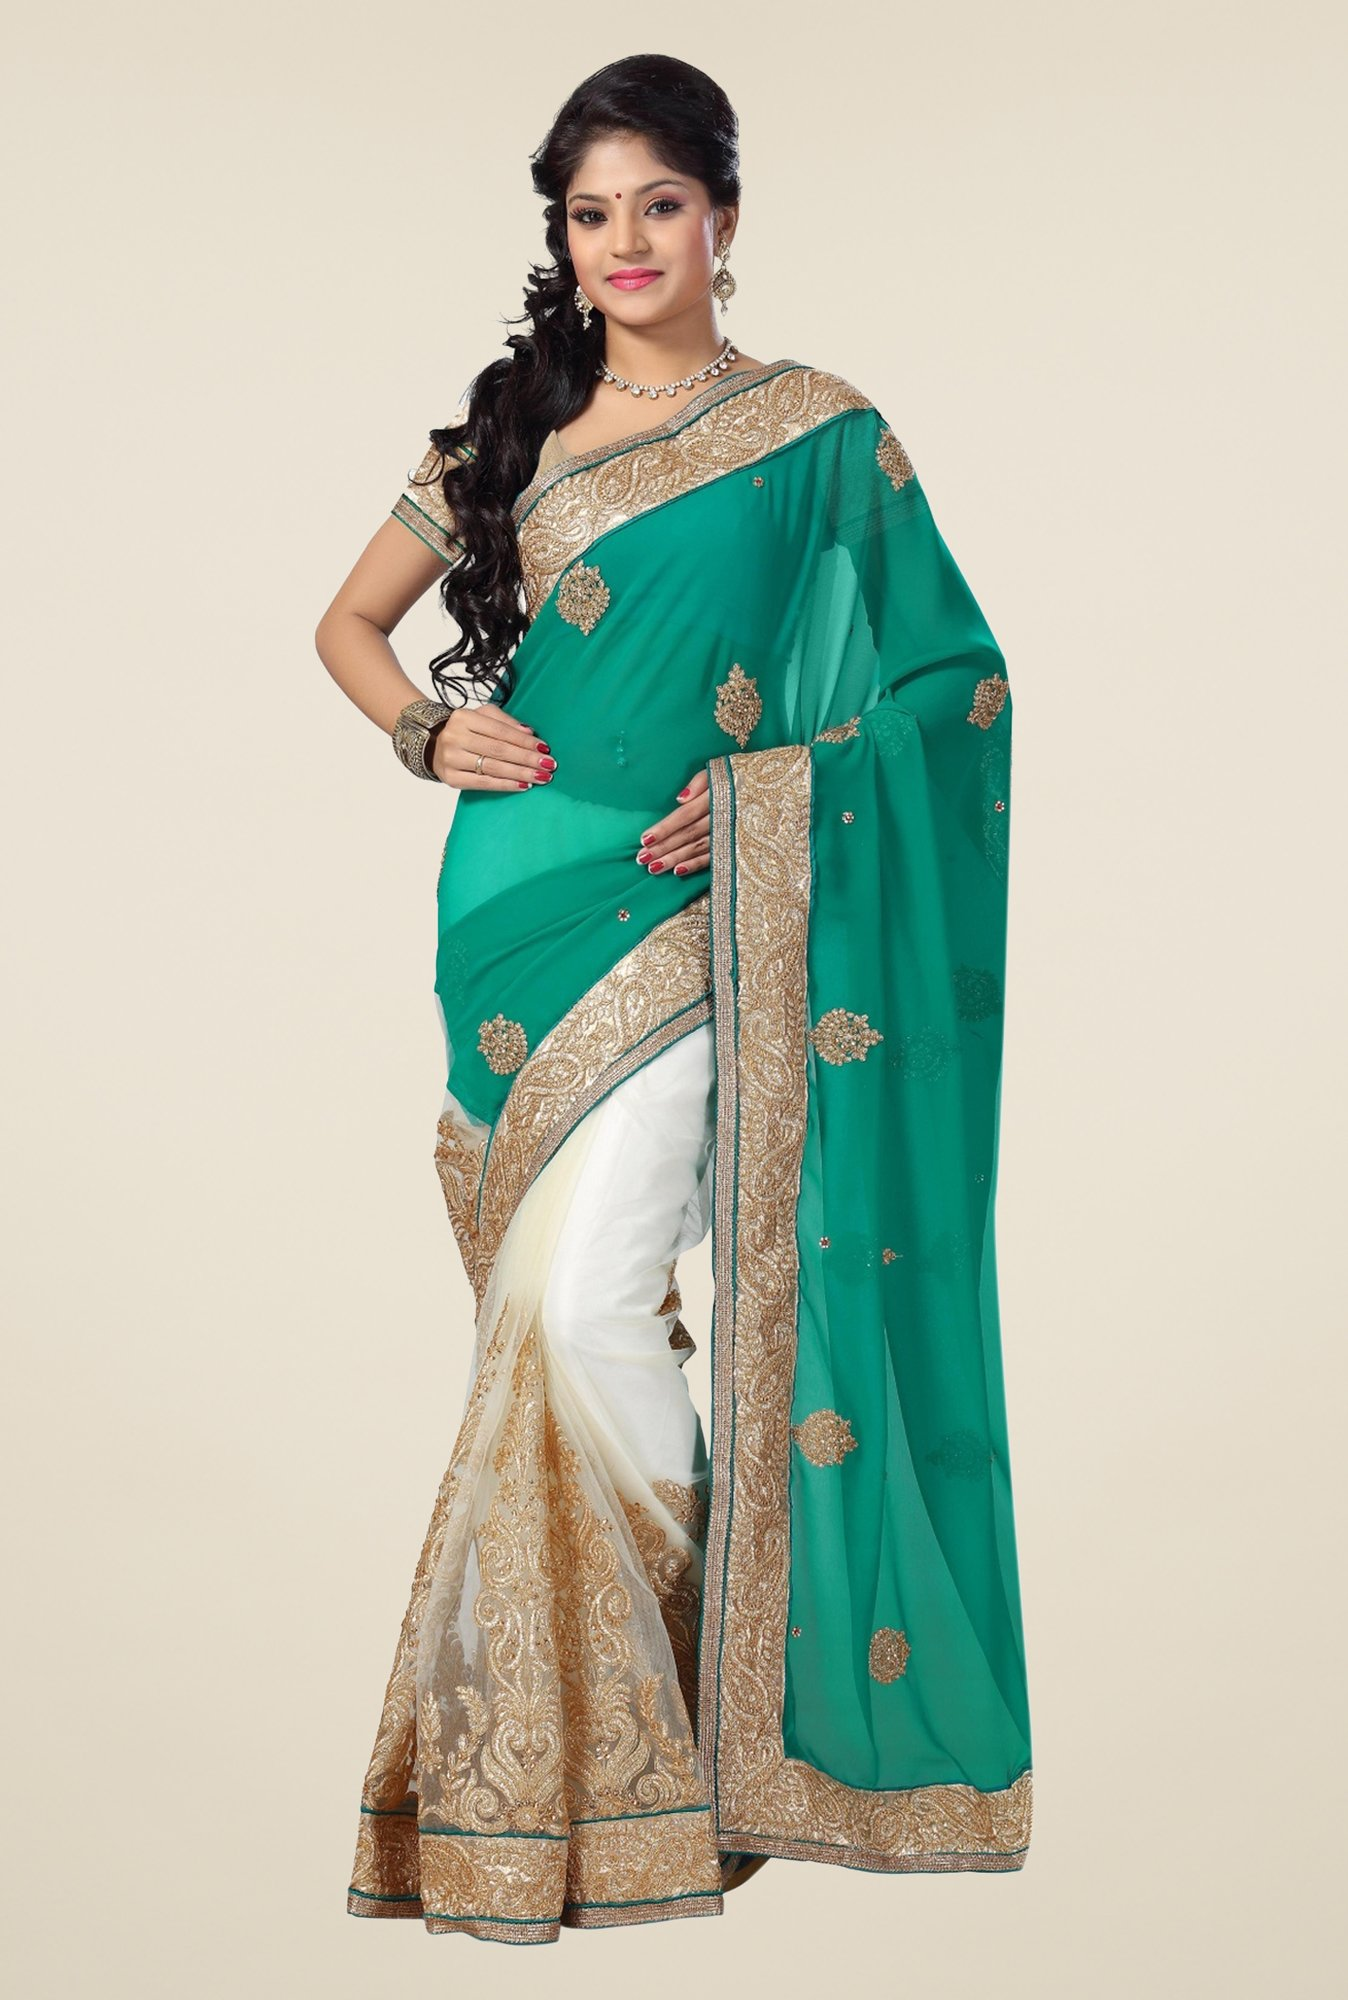 Triveni Off White & Teal Embroidered Faux Georgette Saree